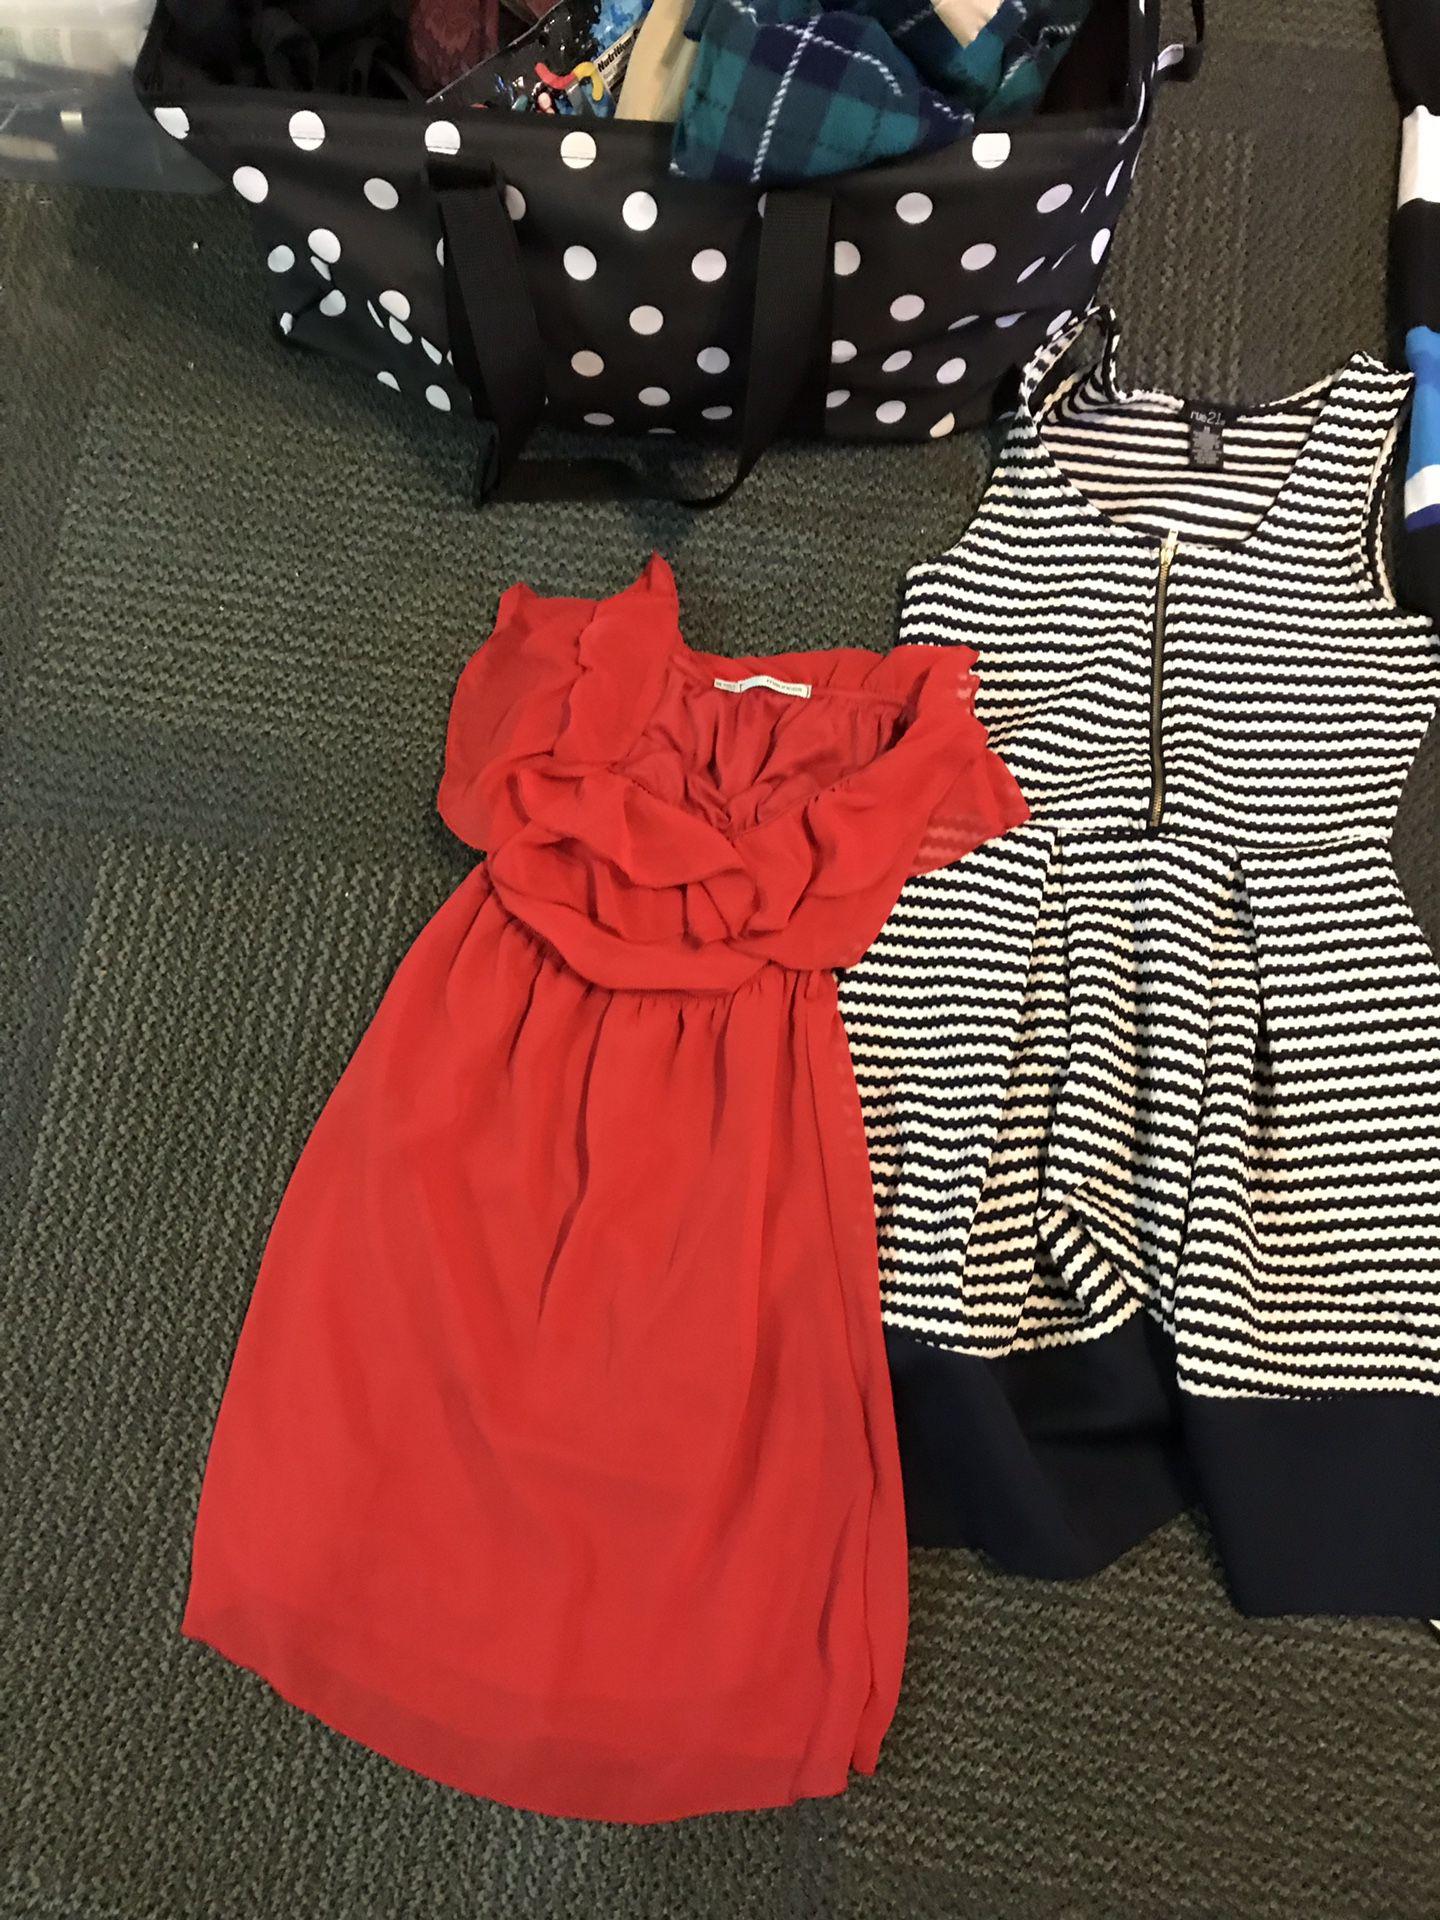 selling various kinds of clothes!!! sizes vary